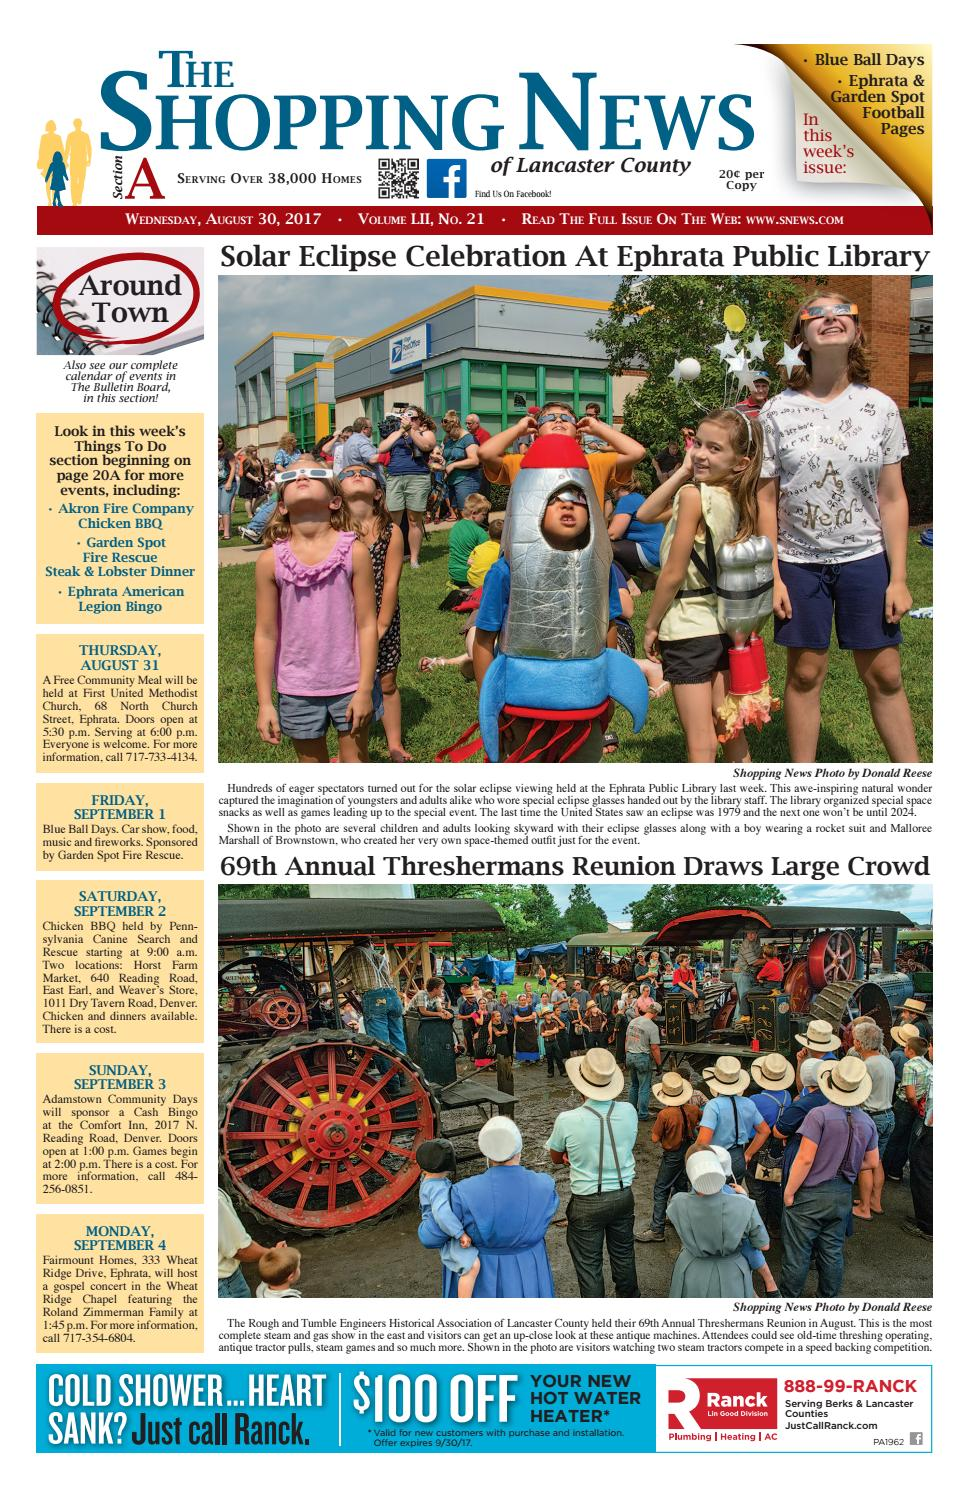 Read this week's issue online now! Jump to. Sections of this page. Accessibility Help. Press alt + / to open this menu. Facebook. Email or Phone: Password: Forgot account? Sign Up. Related Pages. Eicher Arts Center. Nonprofit Organization. Weaverland Mennonite Church. Mennonite Church. Ephrata Agway. Garden Center. Westmont Hilltop School District. Public School. Nibbles McGibbles.